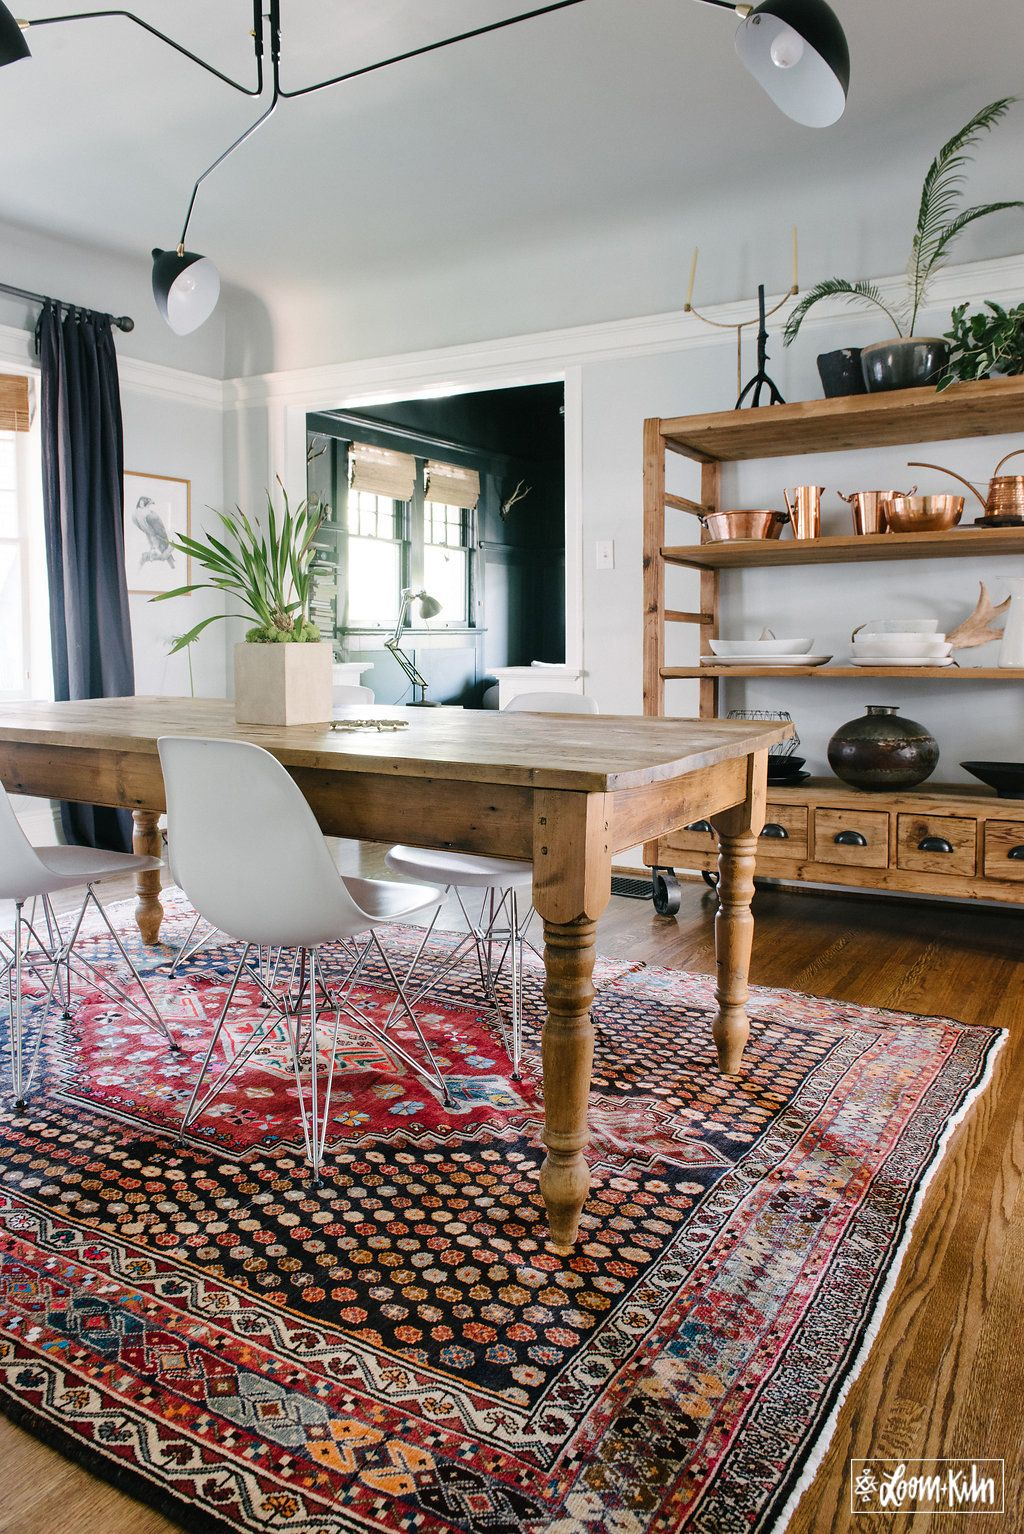 dining room styled by loom kiln dining room style dining room rug bohemian dining room on boho chic dining room kitchen dining tables id=51381